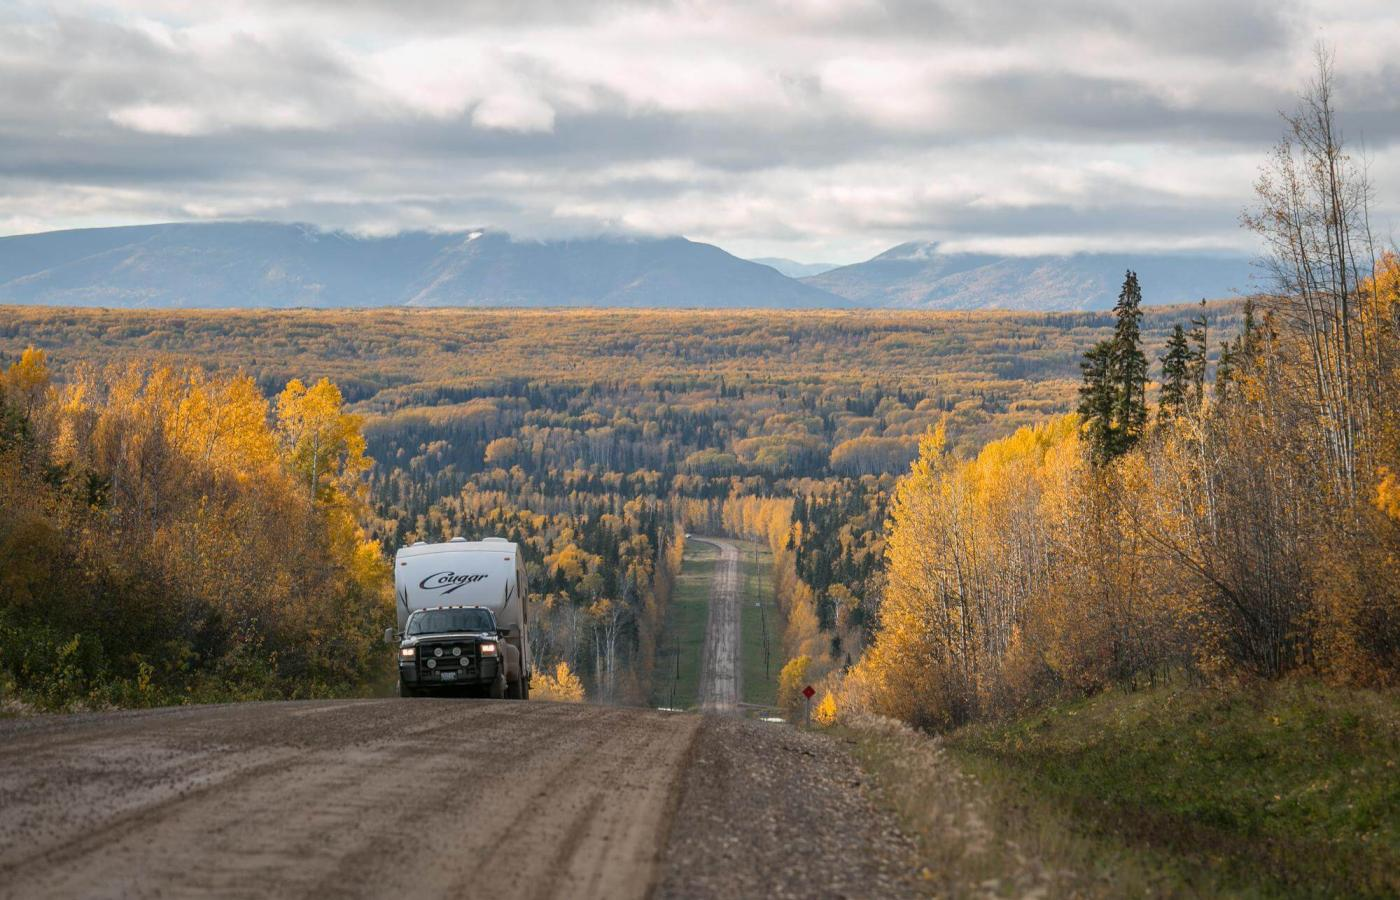 A camper truck travelling a gravel road in the north.